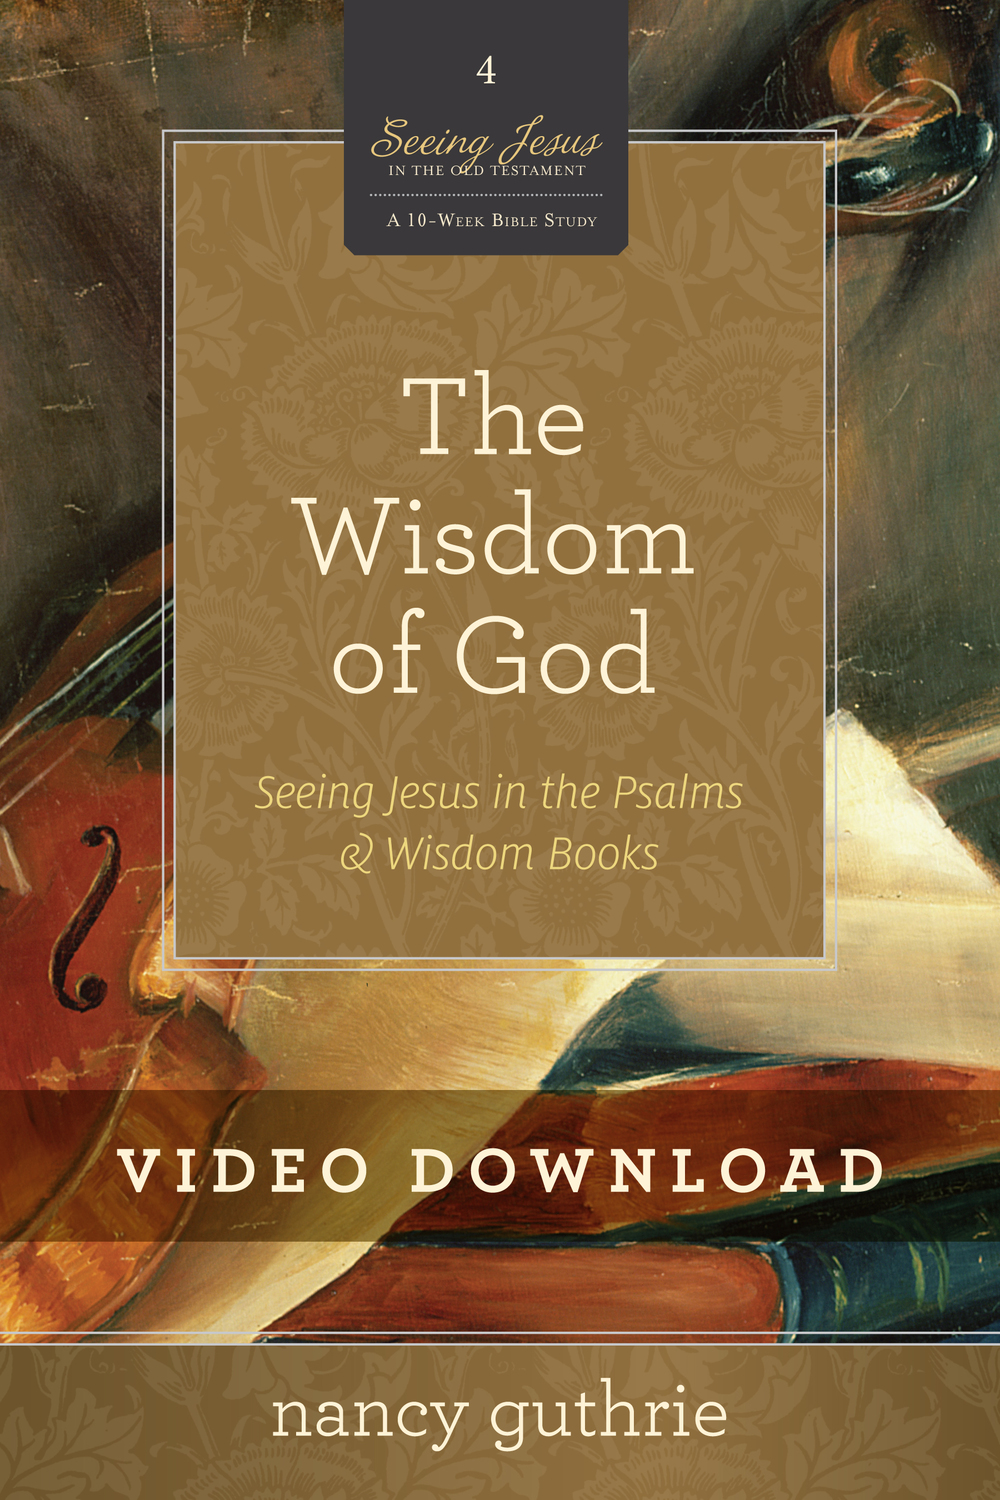 The Wisdom of God Video Session 9 Download